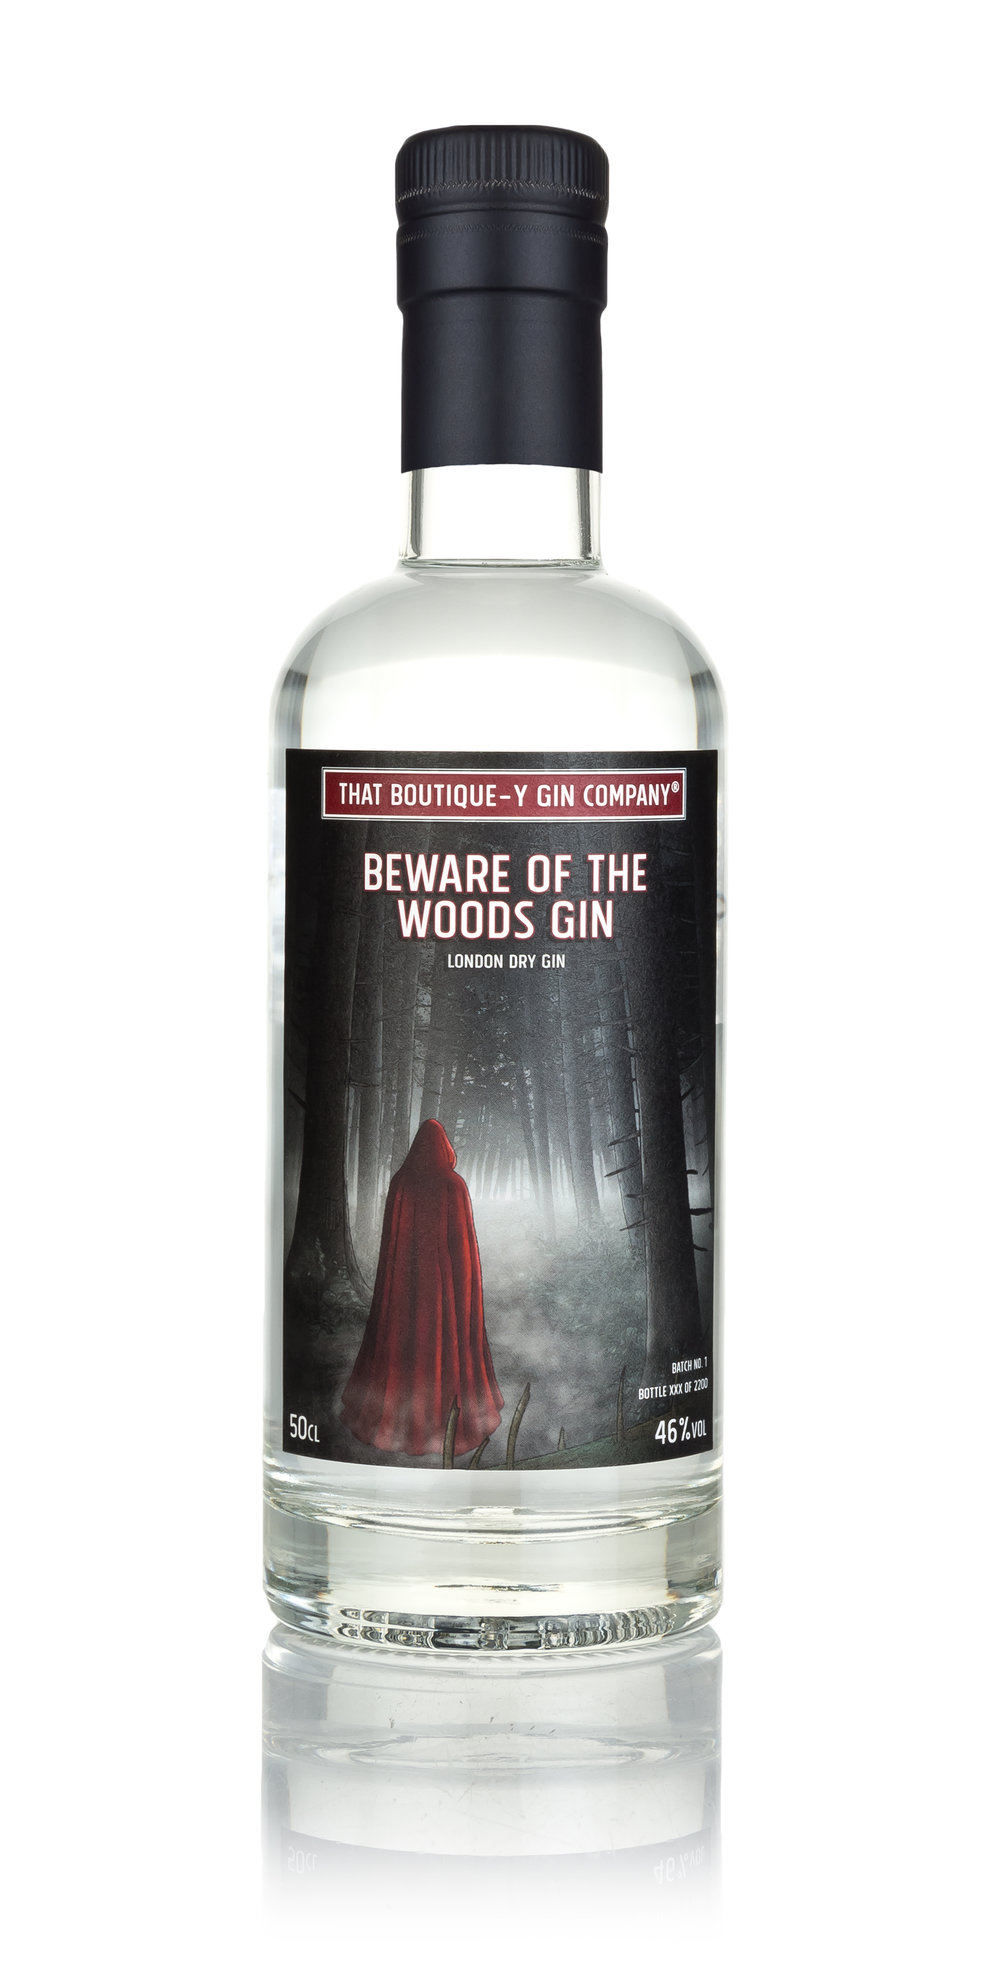 Beware of the Woods Gin (That Boutique-y Gin Company).jpg